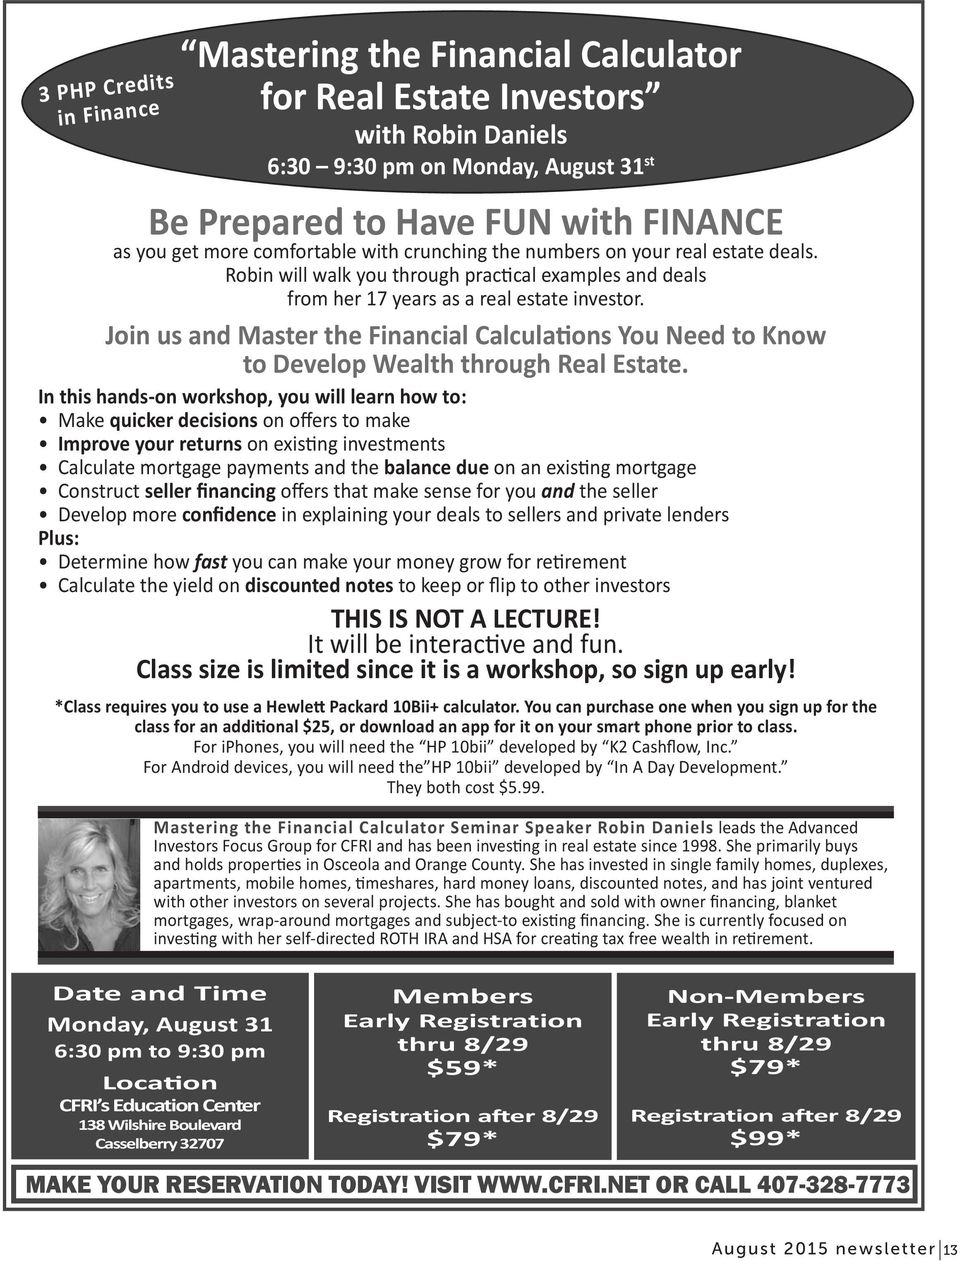 Join us and Master the Financial Calculations You Need to Know to Develop Wealth through Real Estate.